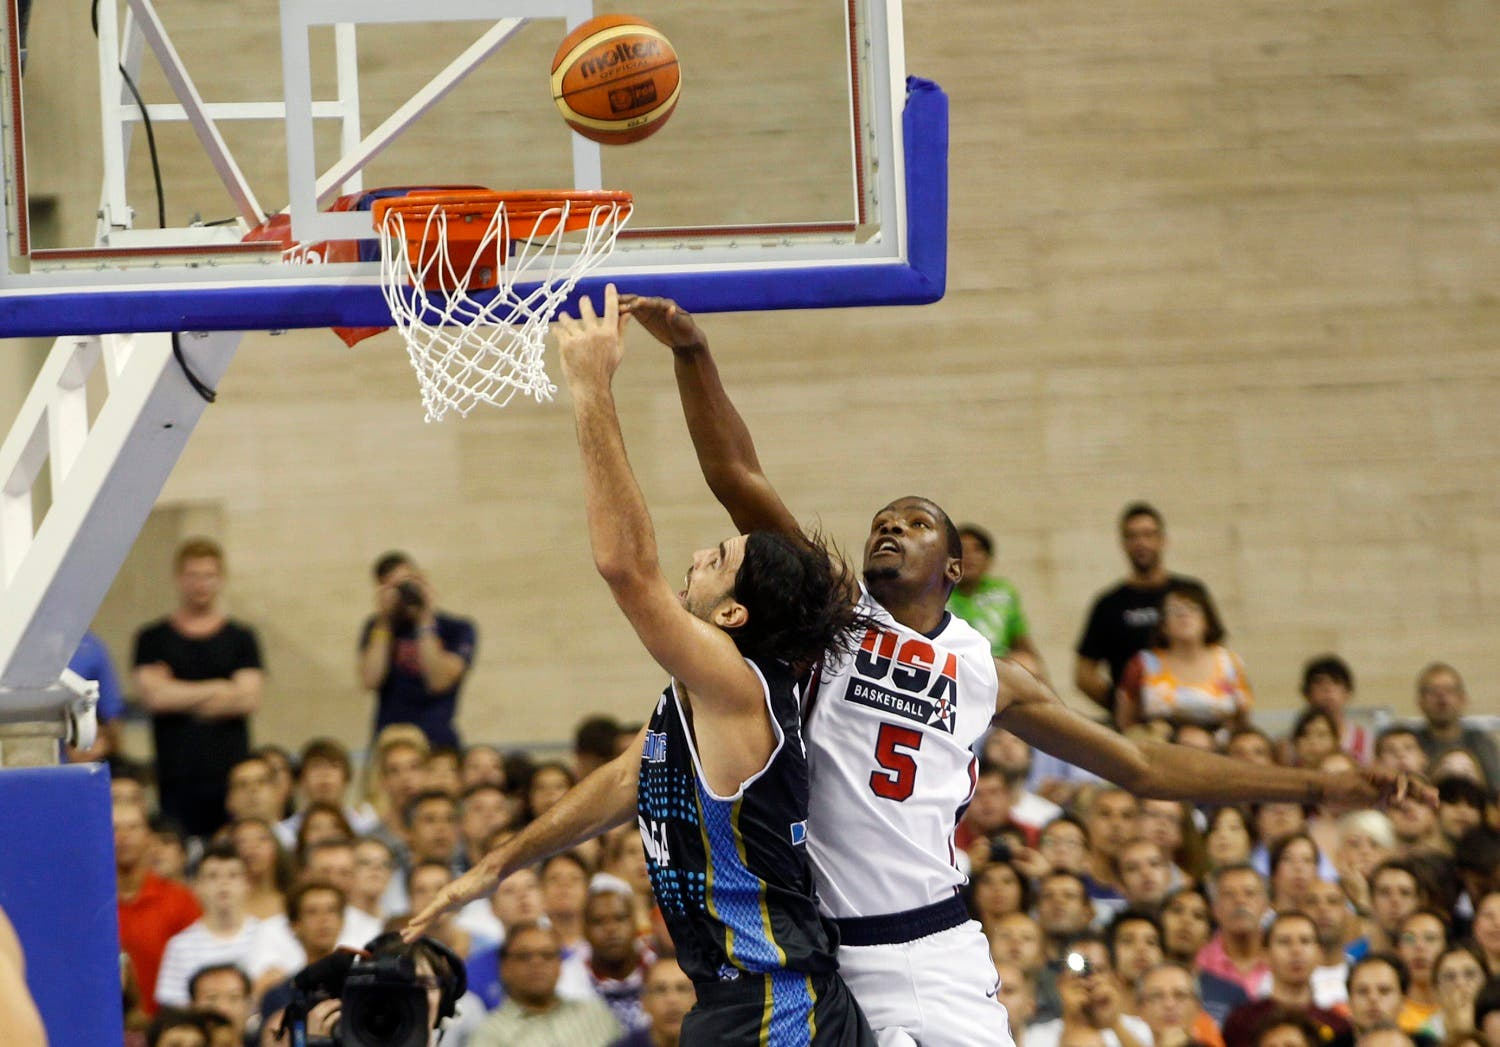 U.S. Olympic basketball player Kevin Durant (R) challenges Argentina's Luis A. Scola during an exhibition game ahead of the 2012 London Olympic Games at Palau Sant Jordi in Barcelona July 22, 2012. REUTERS